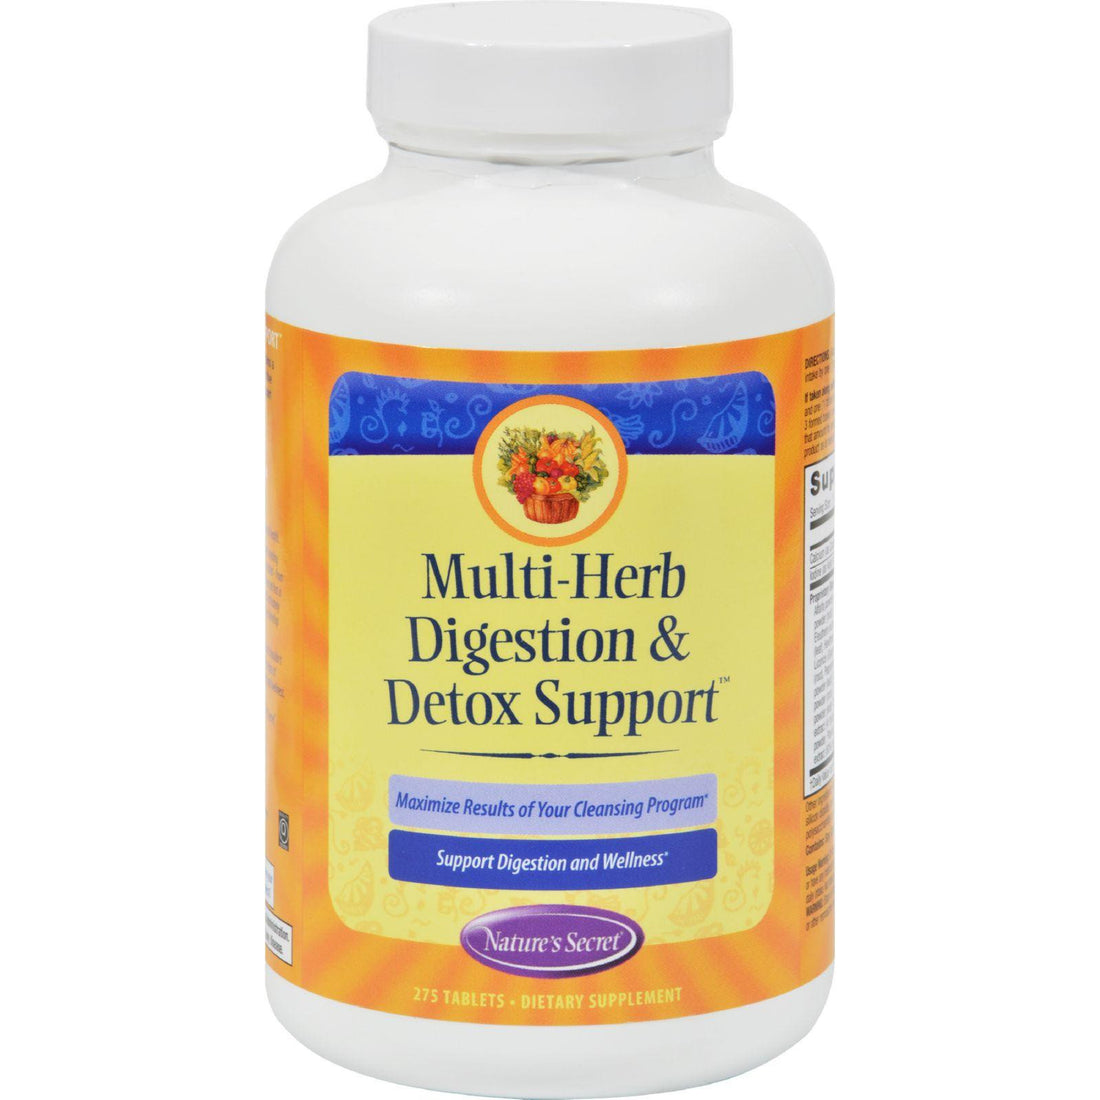 Mother Mantis: Nature's Secret Multi-herb Digestion And Detox Support - 275 Tablets Nature's Secret